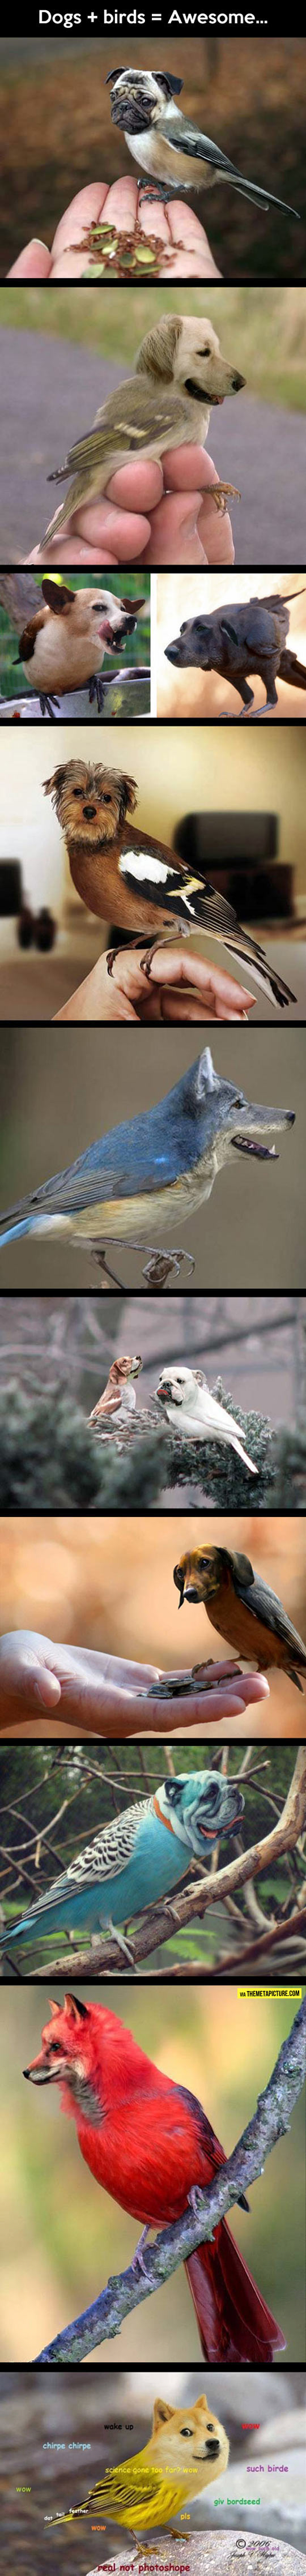 cool-dogs-birds-hand-combination-animals